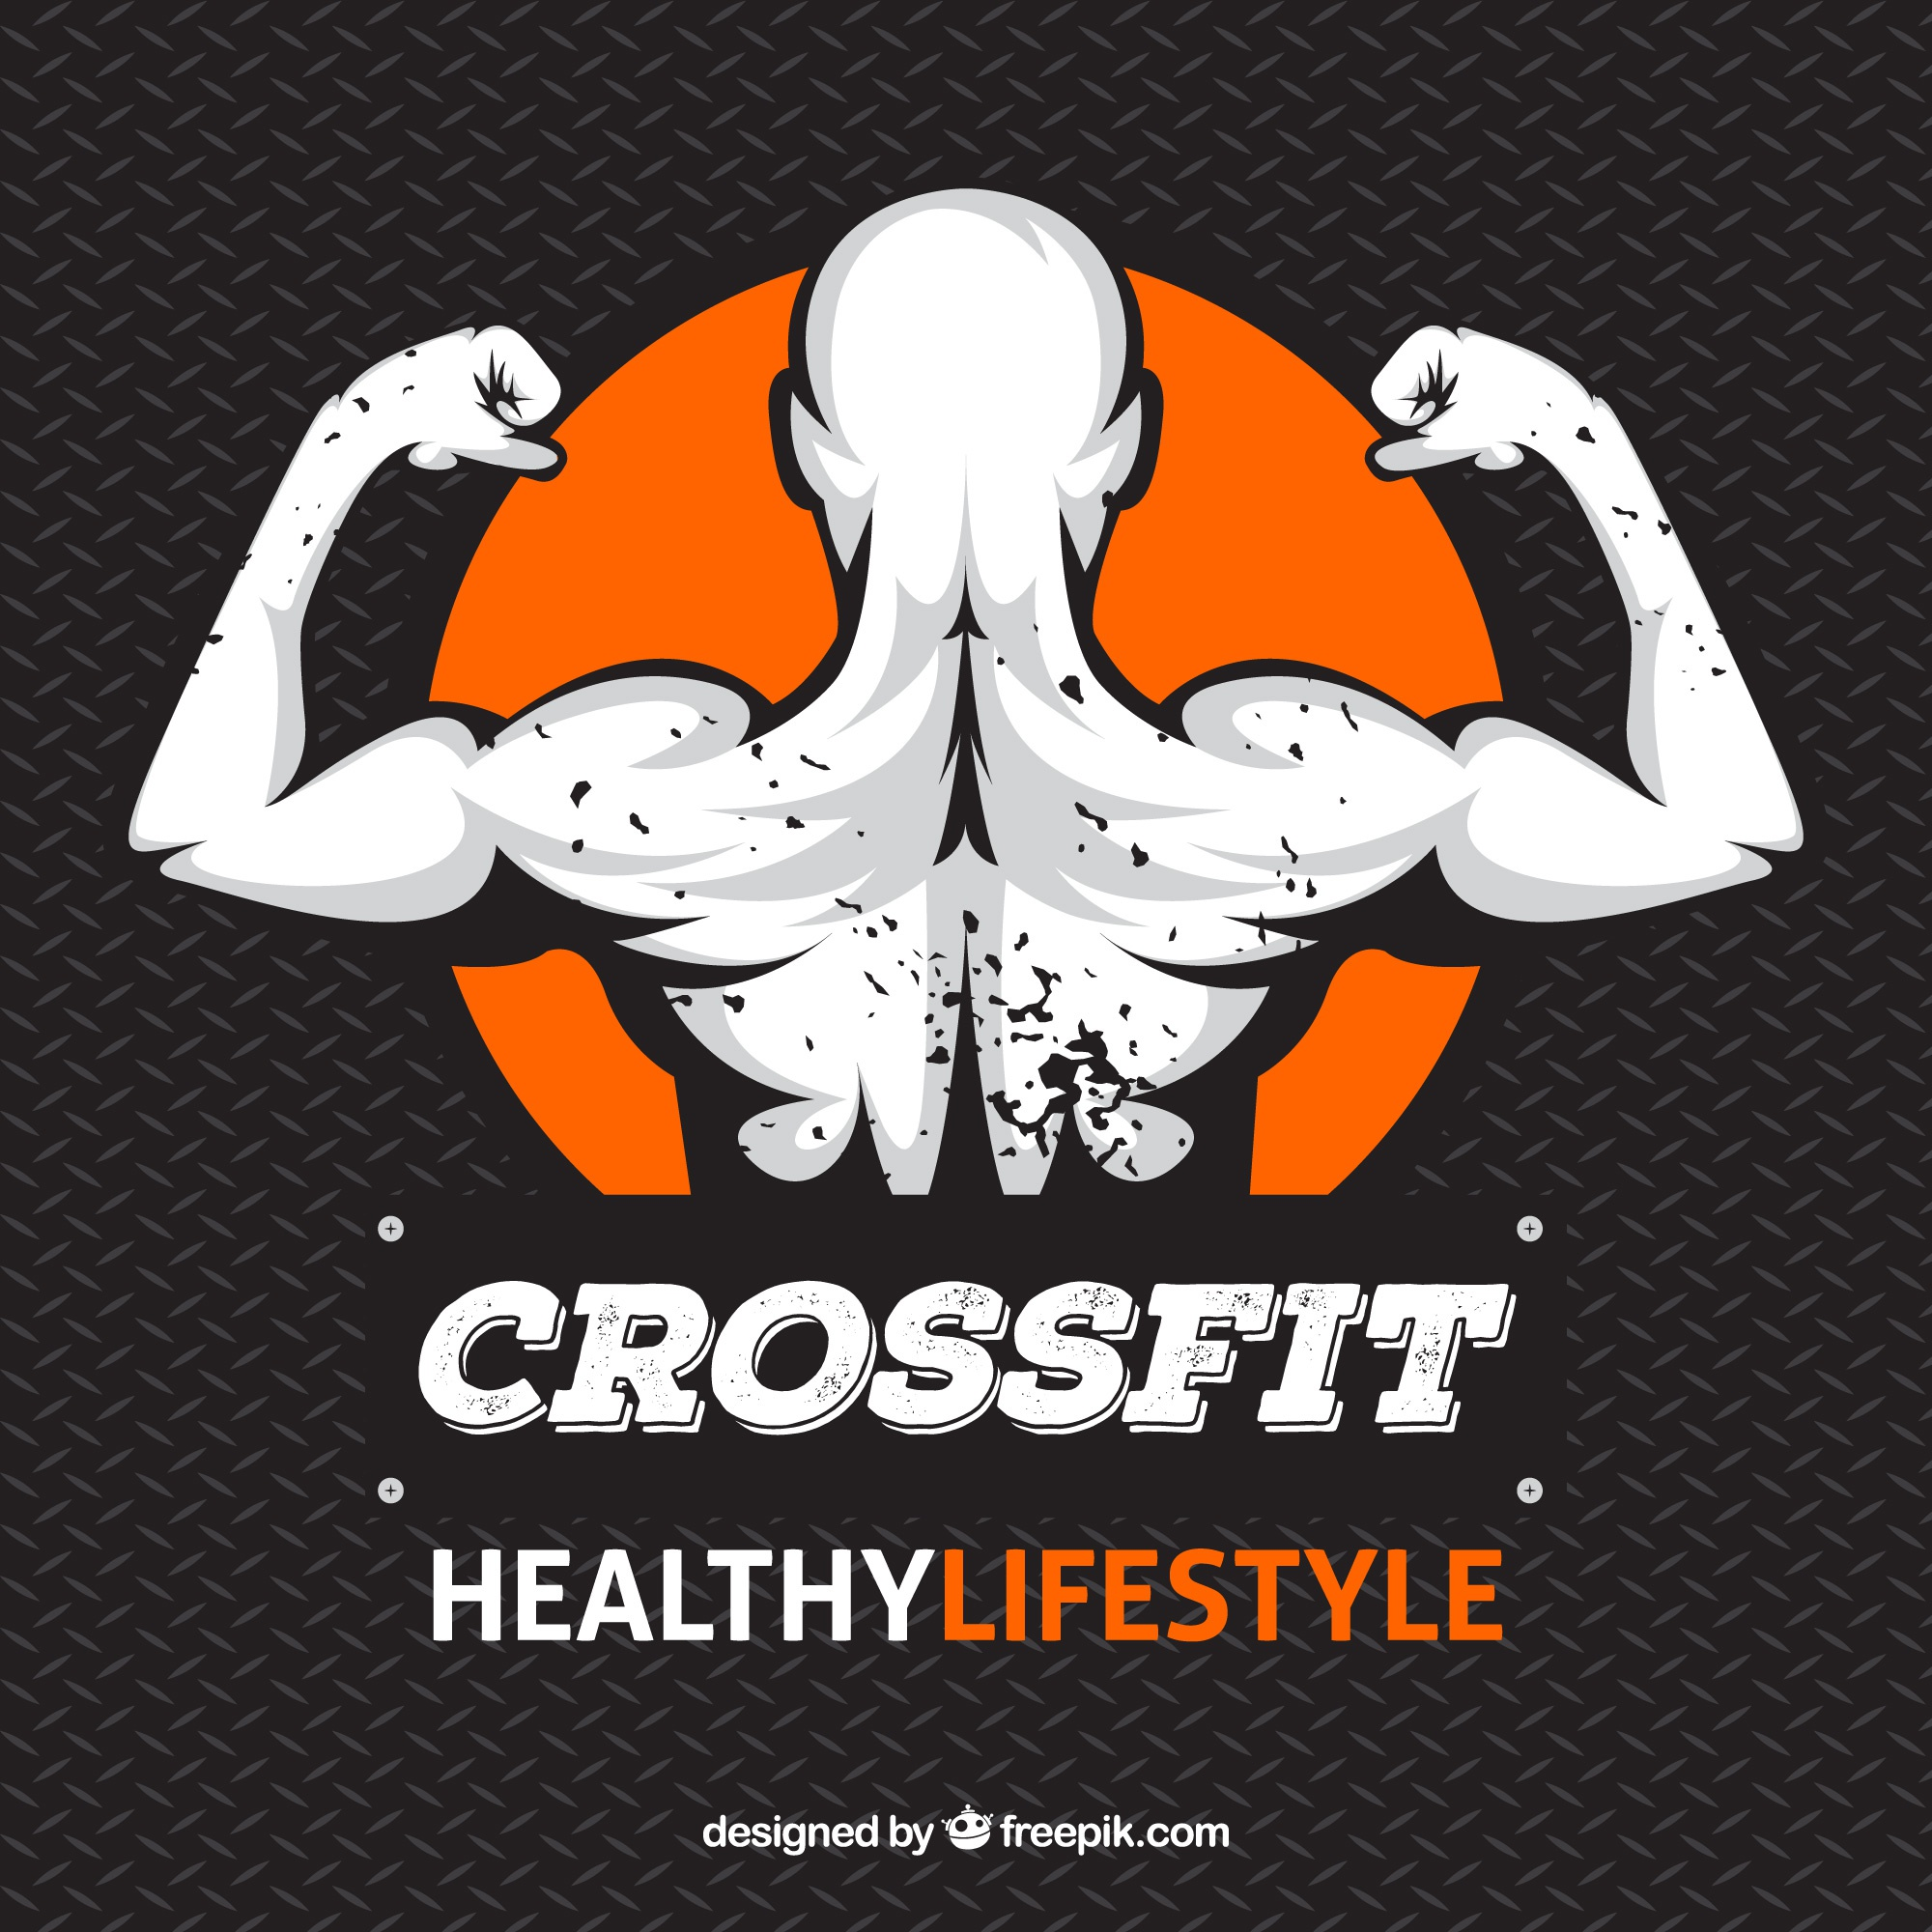 Crossfit background with illustration